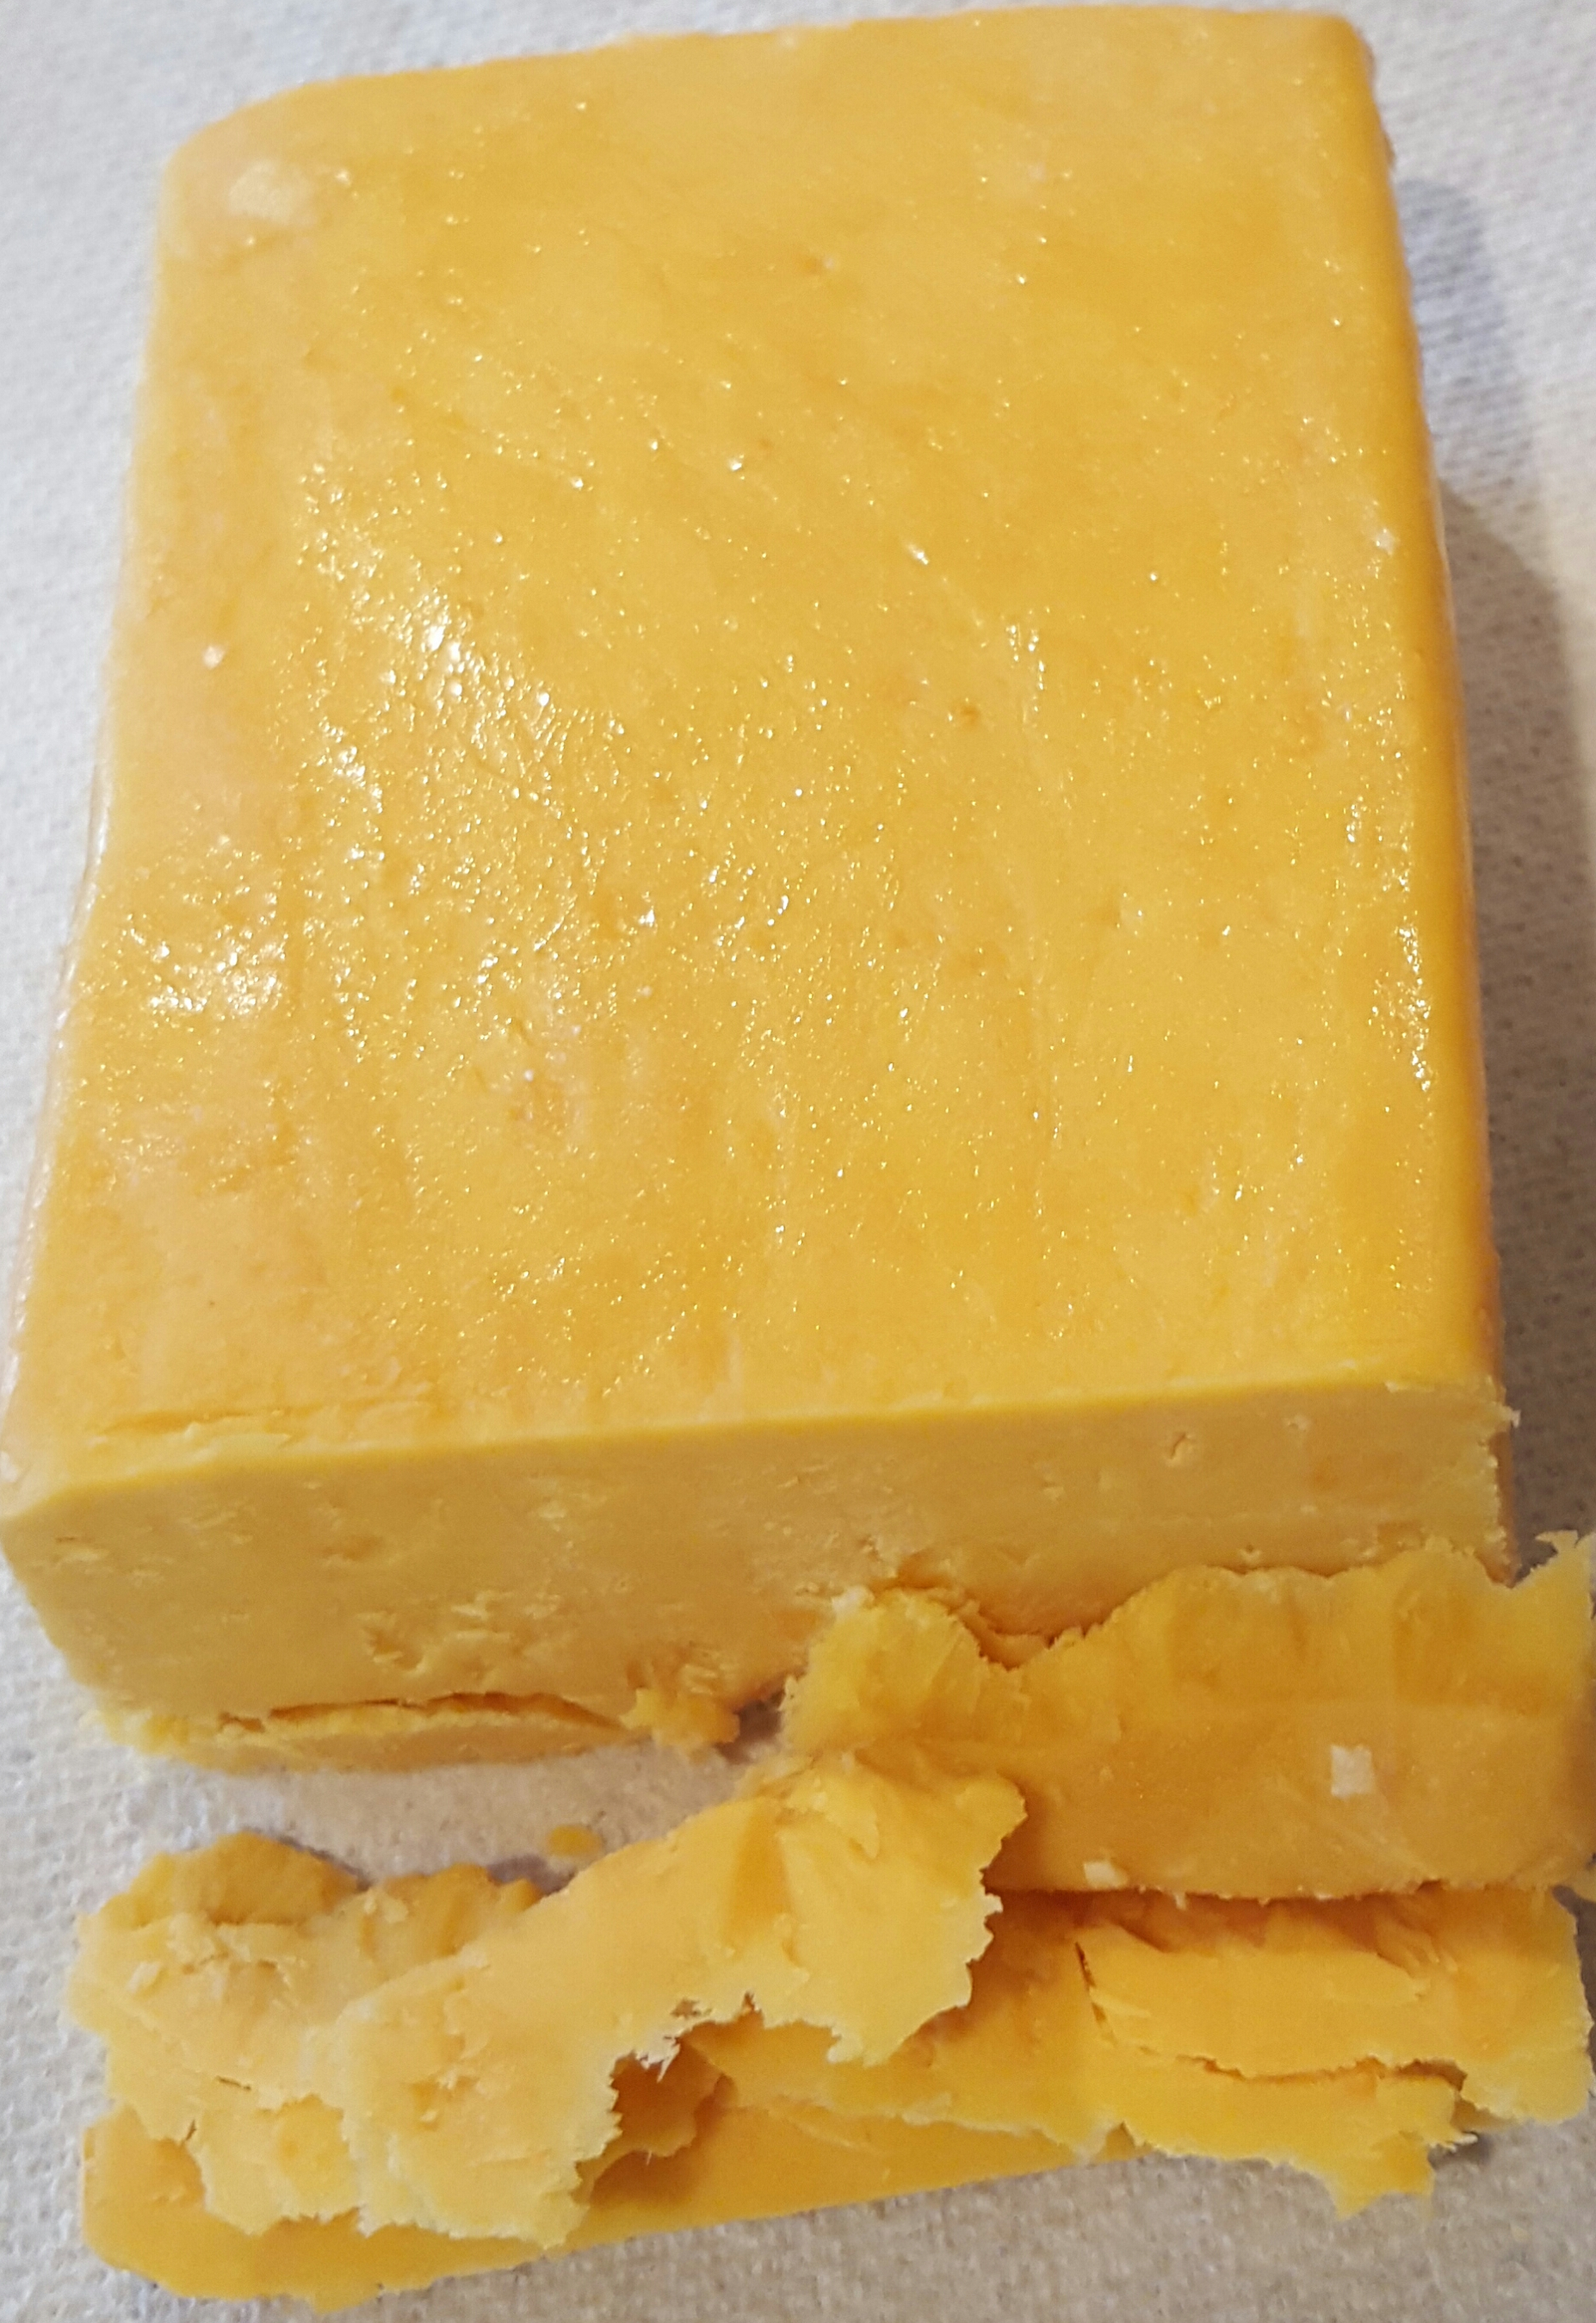 Hook's 20 Year Old Cheddar